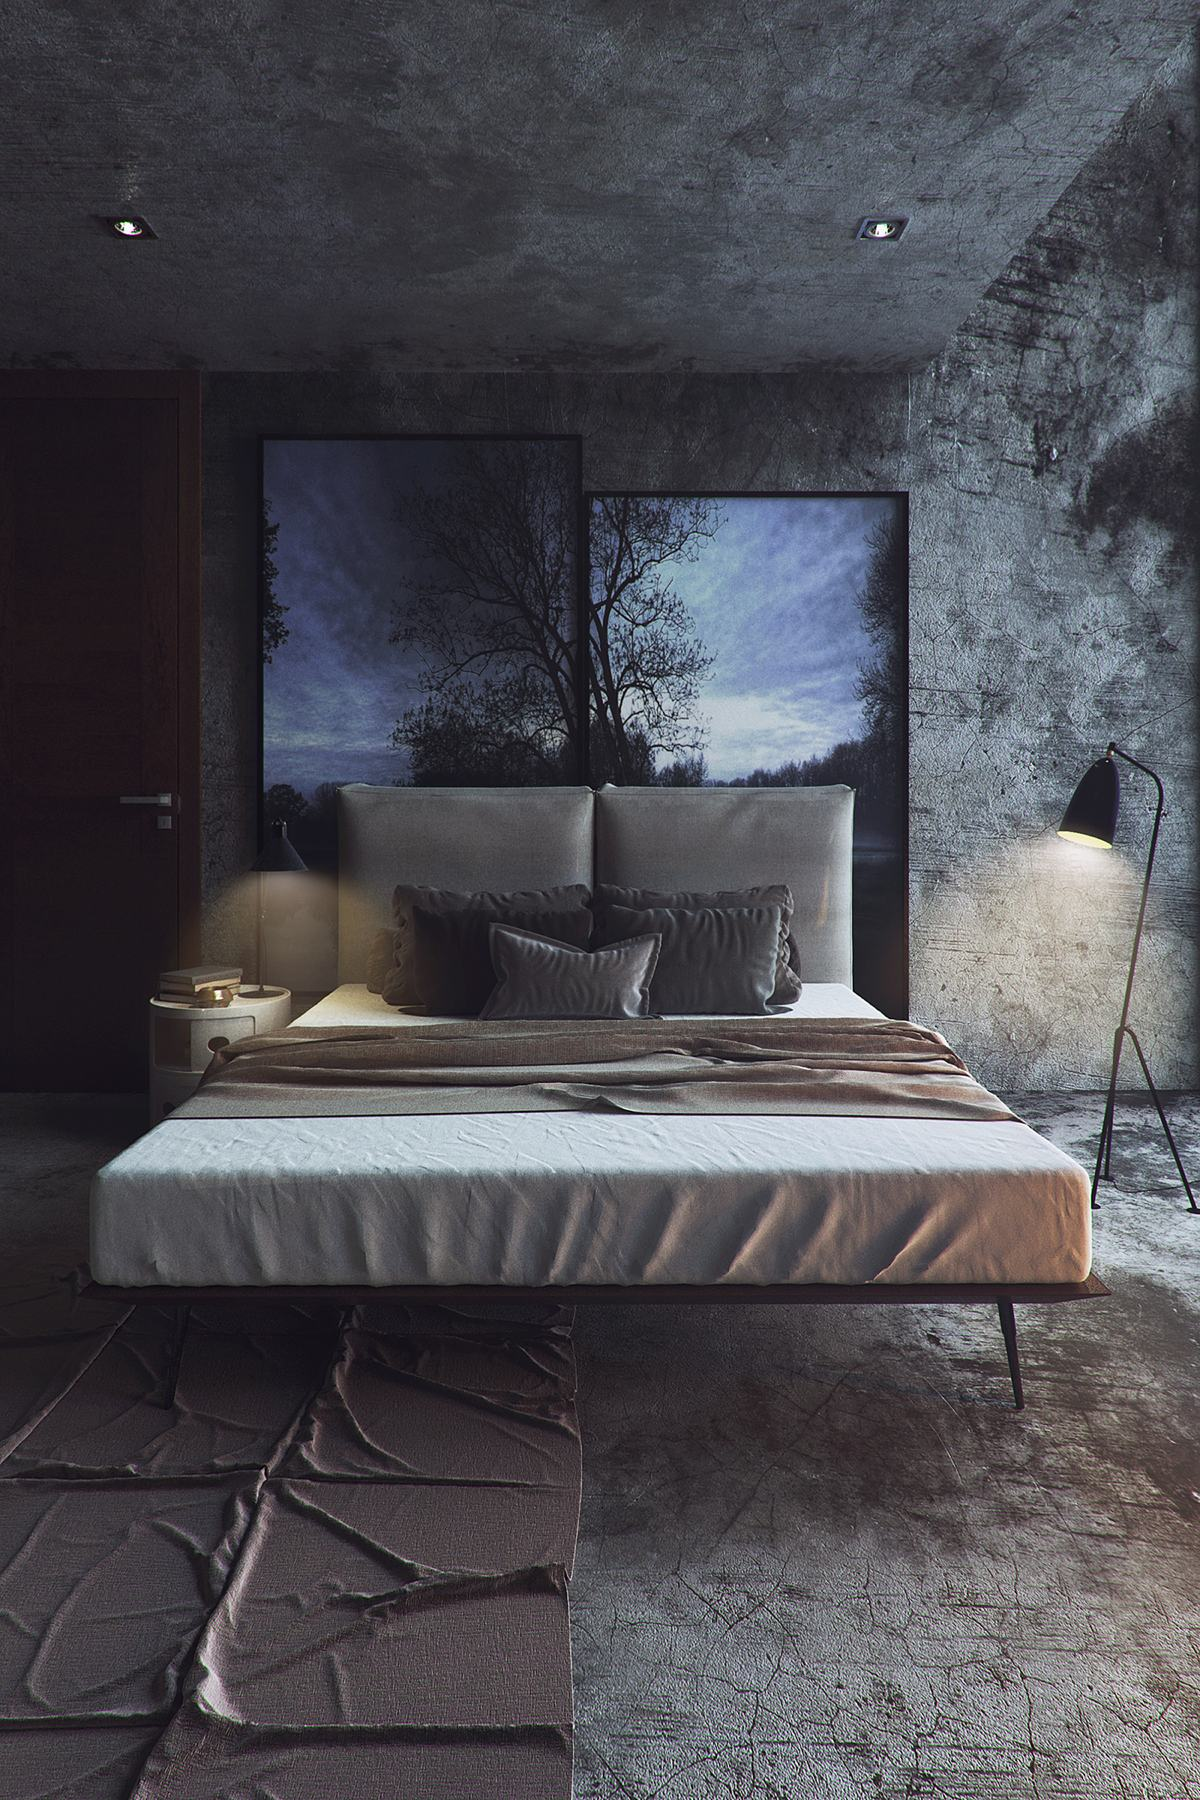 Bedroom With Dramatic Atmosphere - 8 striking bedrooms with distinct personalities